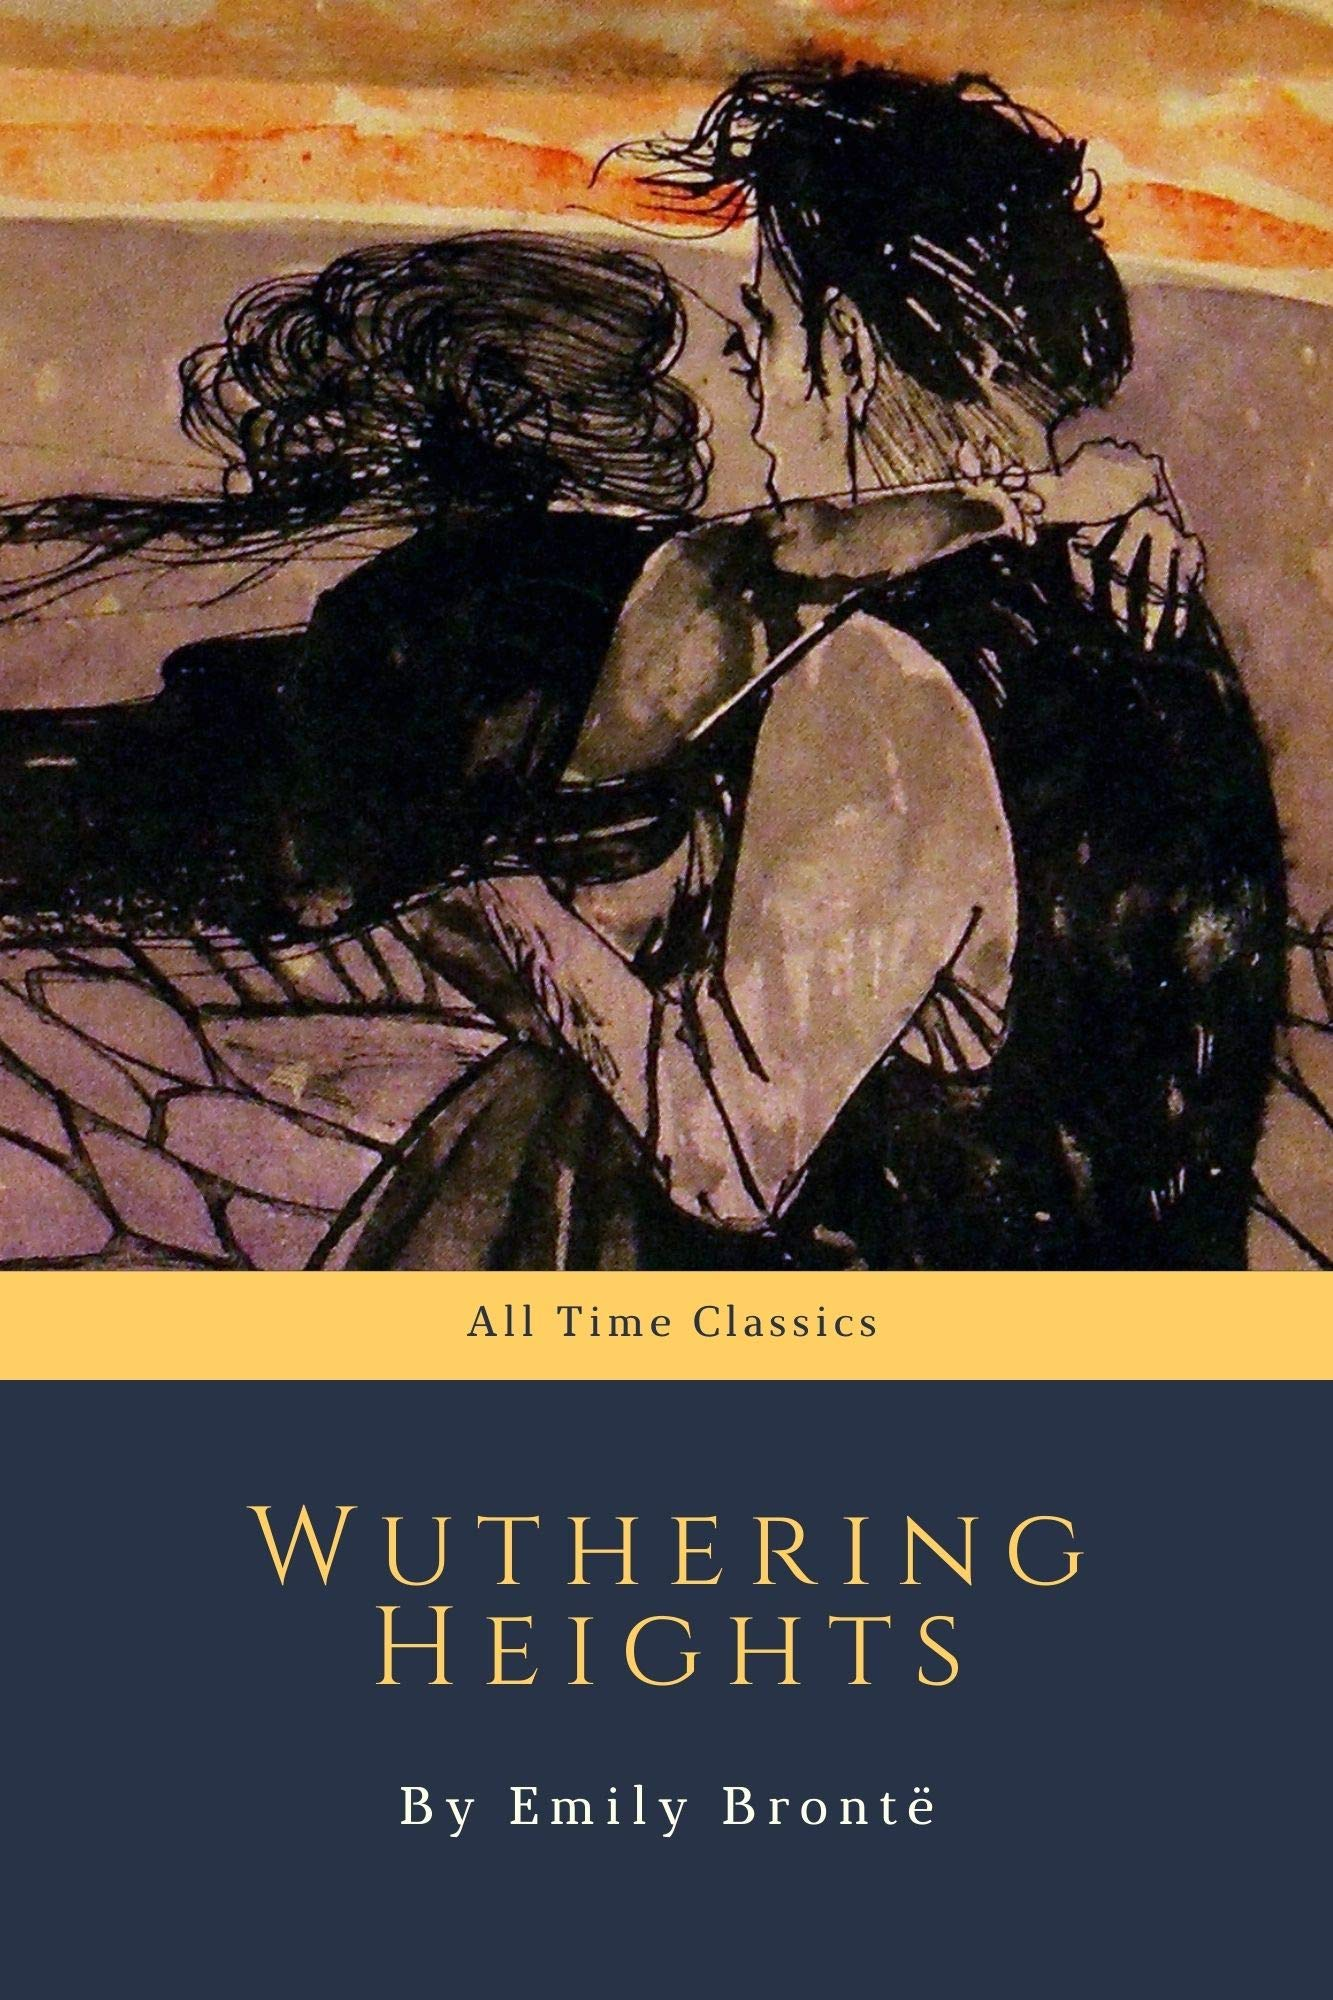 Wuthering Heights by Emily Brontë (All Time Classics Book 25)